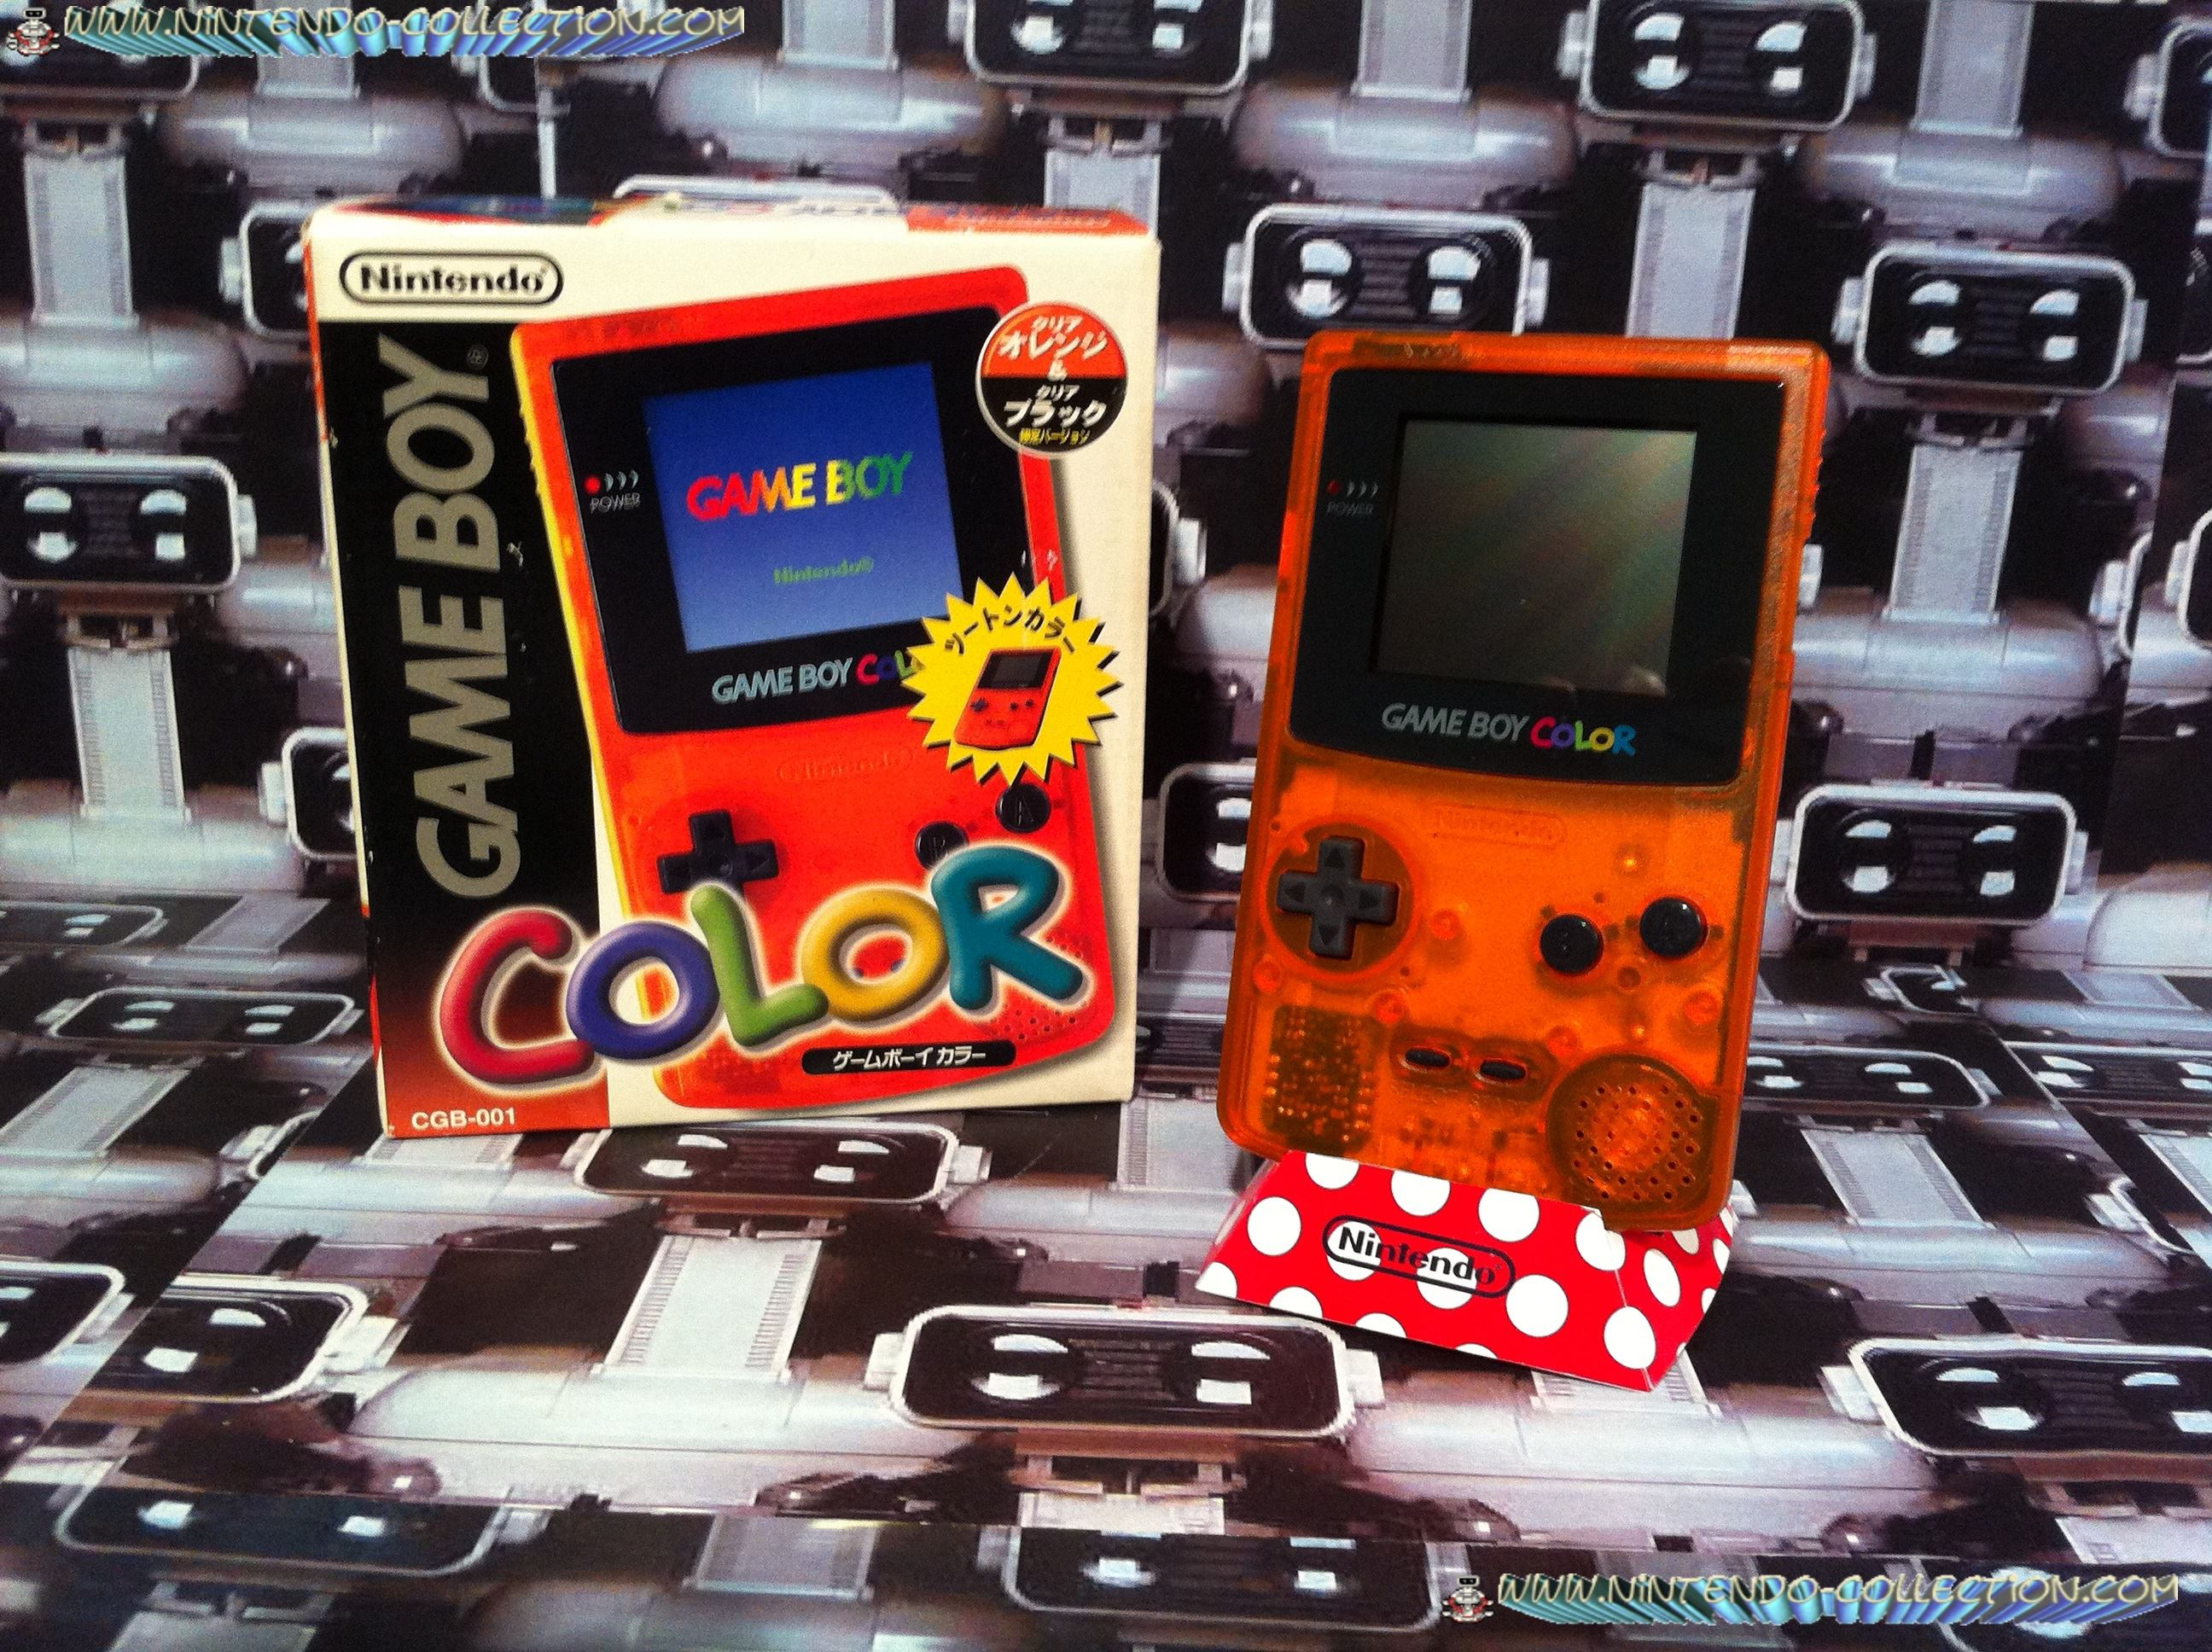 www.nintendo-collection.com - Gameboy Color Daiei edition Japan